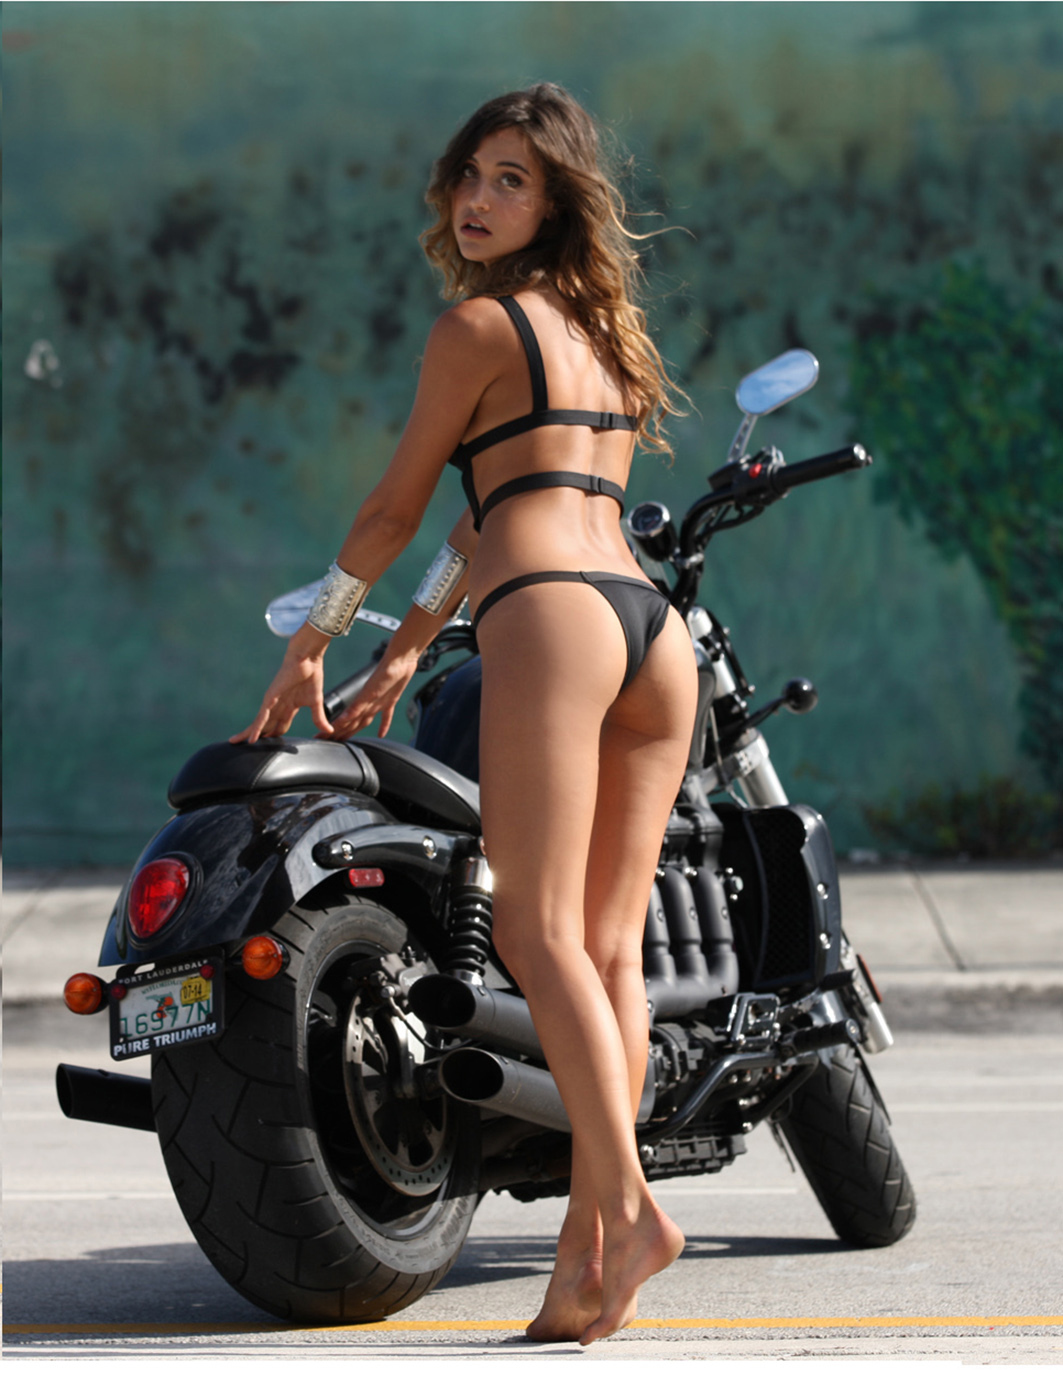 motorcycles on porn Milf girls Hot nude